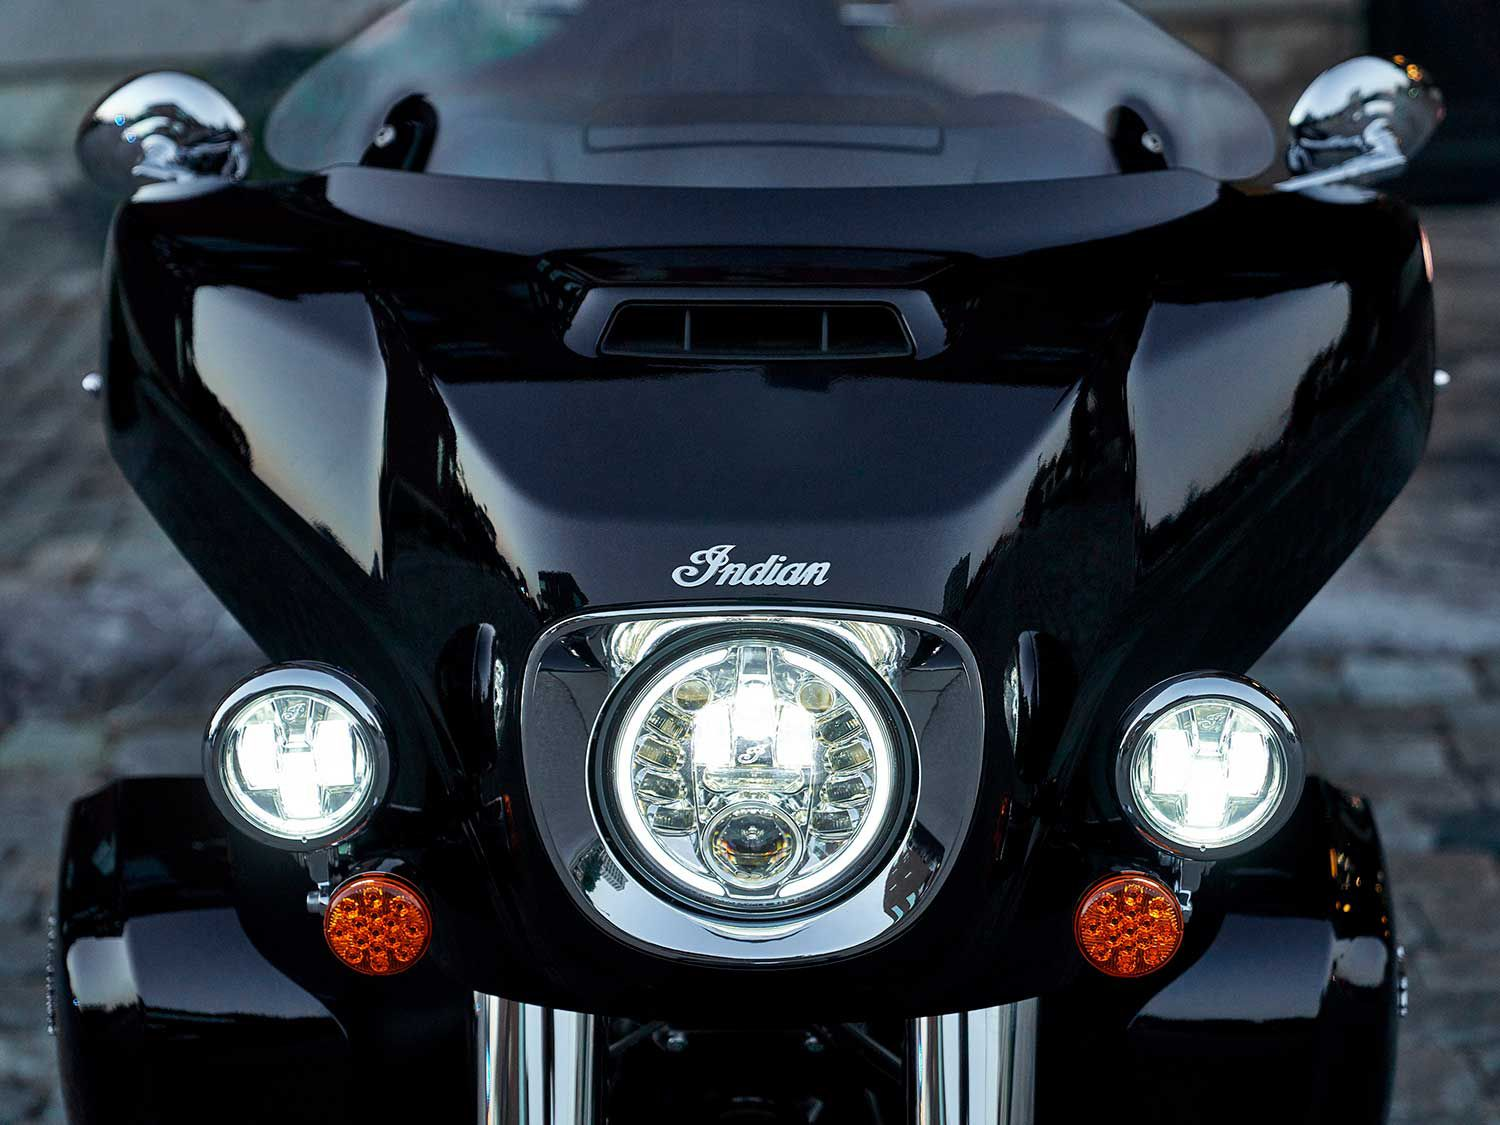 New Pathfinder Adaptive LED Headlight can be fitted to most 2015-2021 Thunder Stroke models. The light senses lean angle and activates individual projector beams to reach dark corners for better visibility.